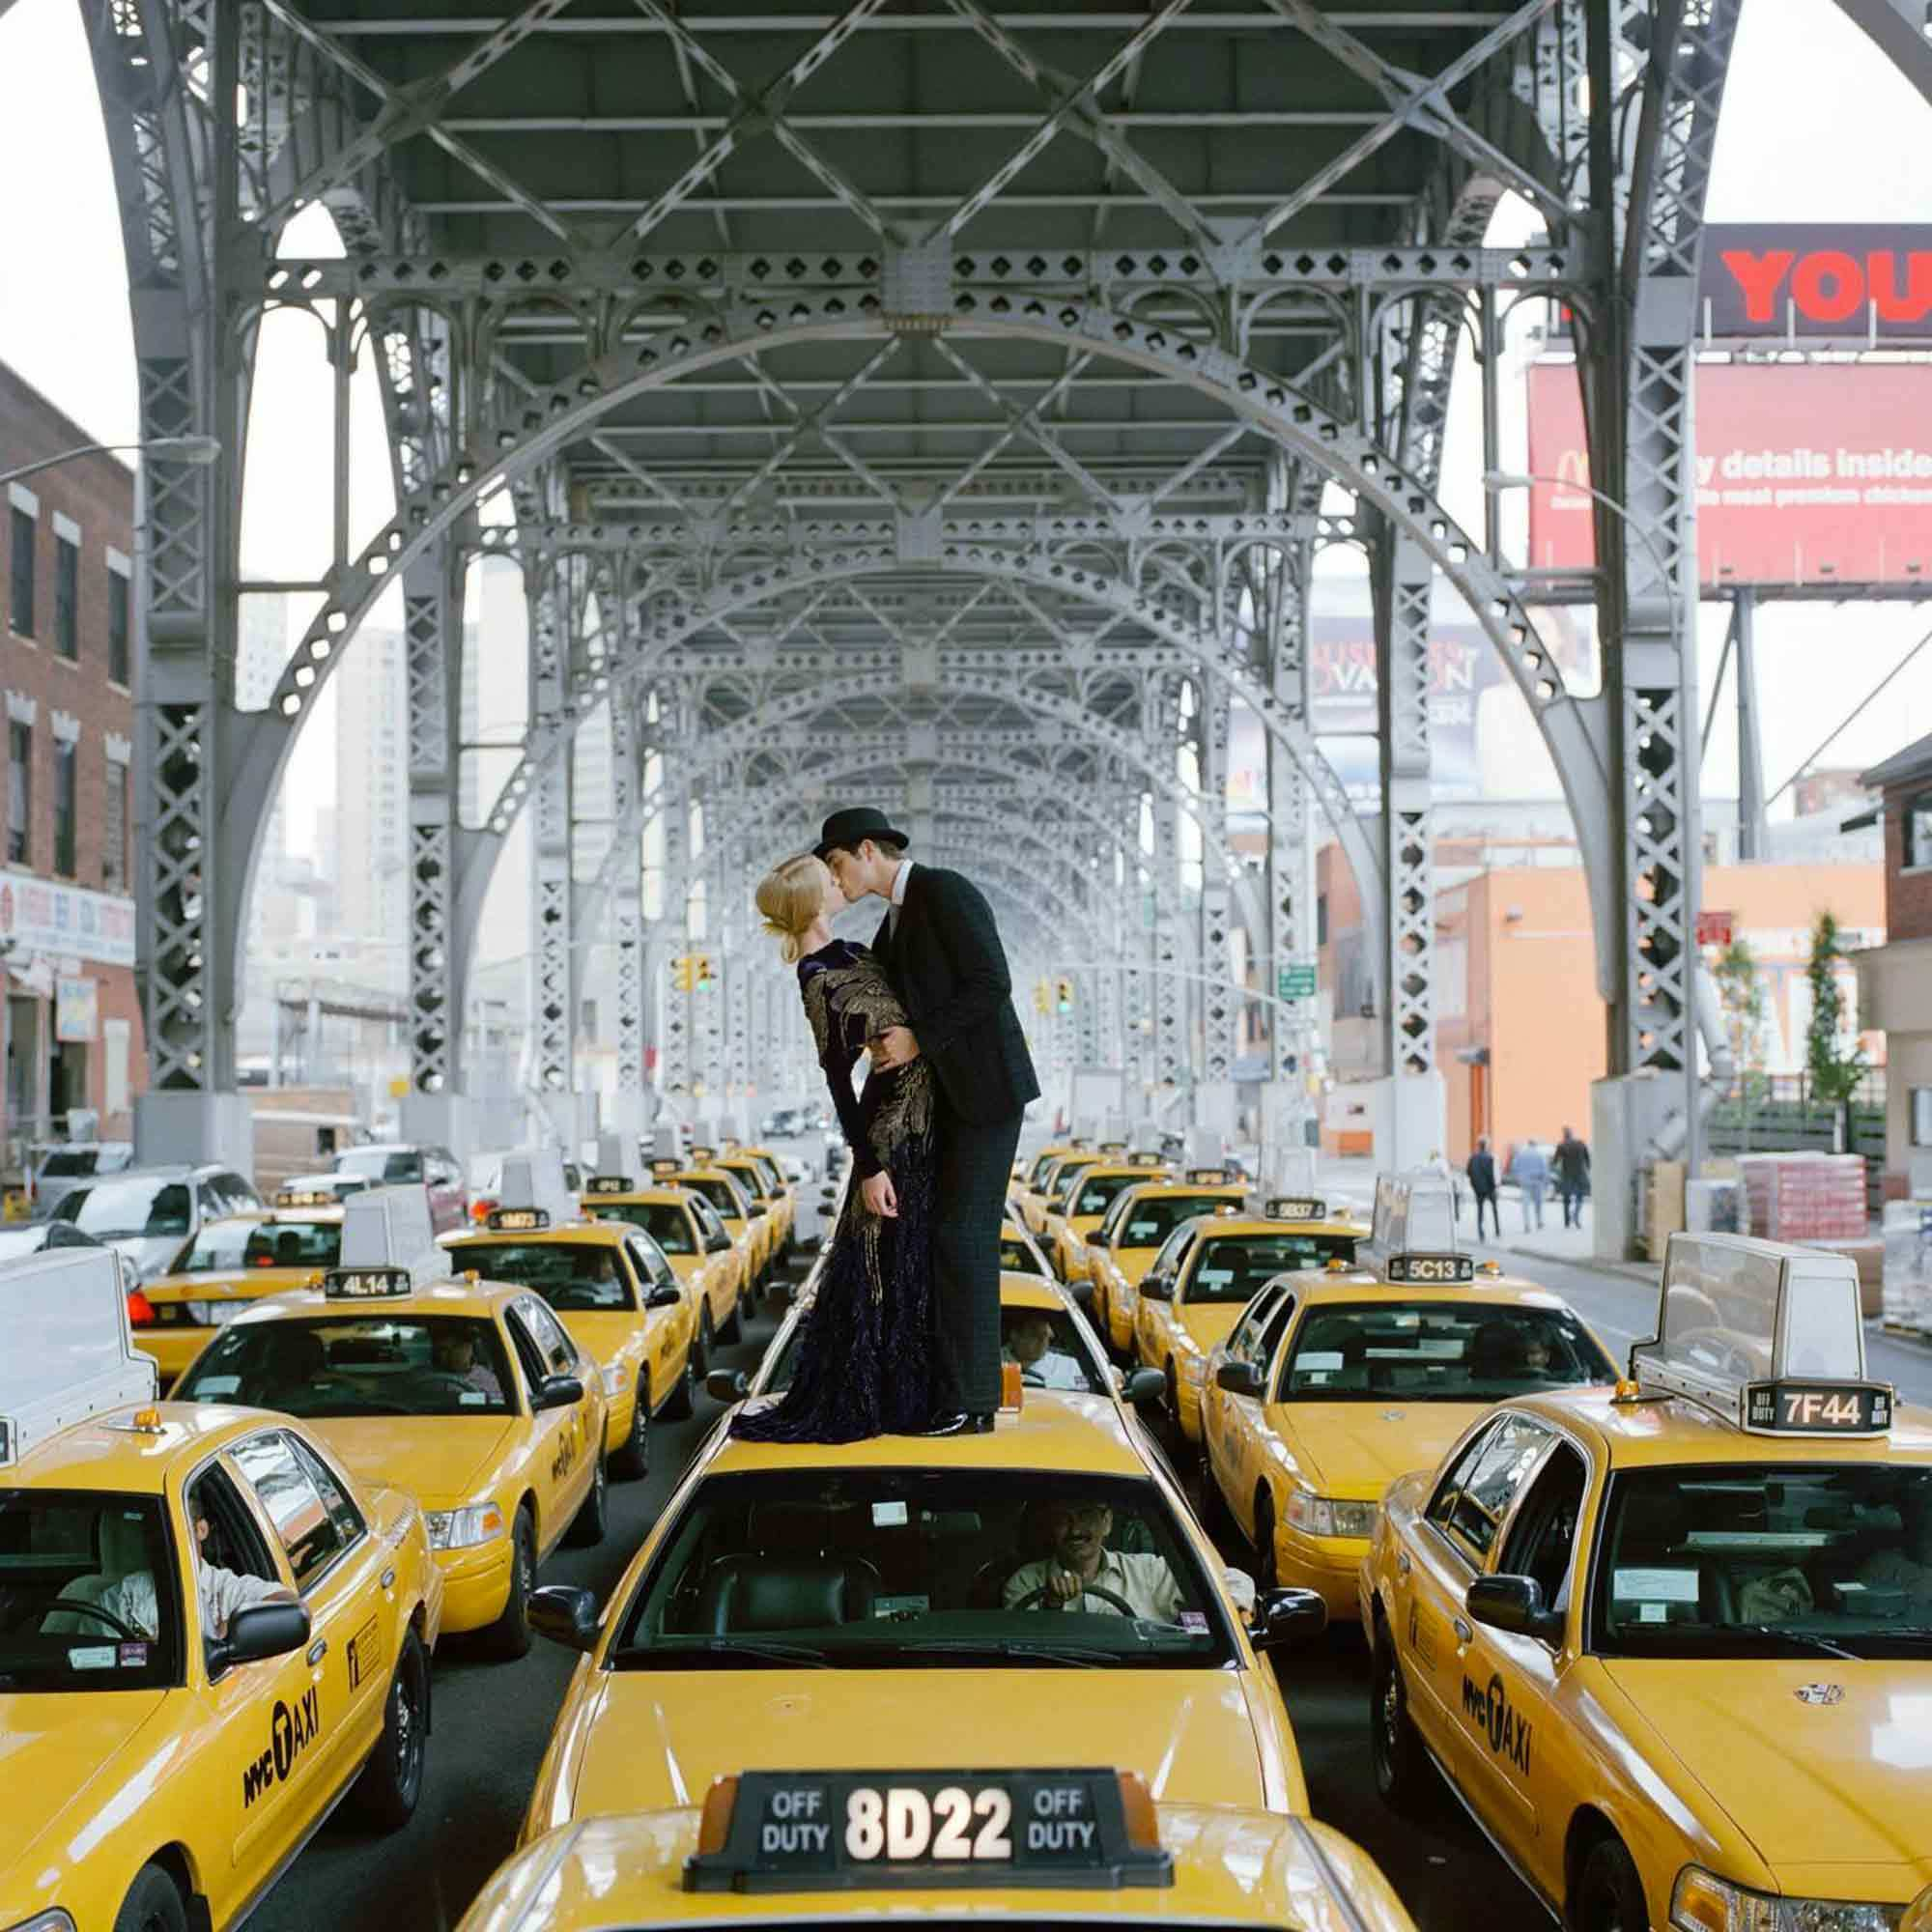 RODNEY SMITH Edythe and Andrew s'embrassant sur un taxi New York 2007